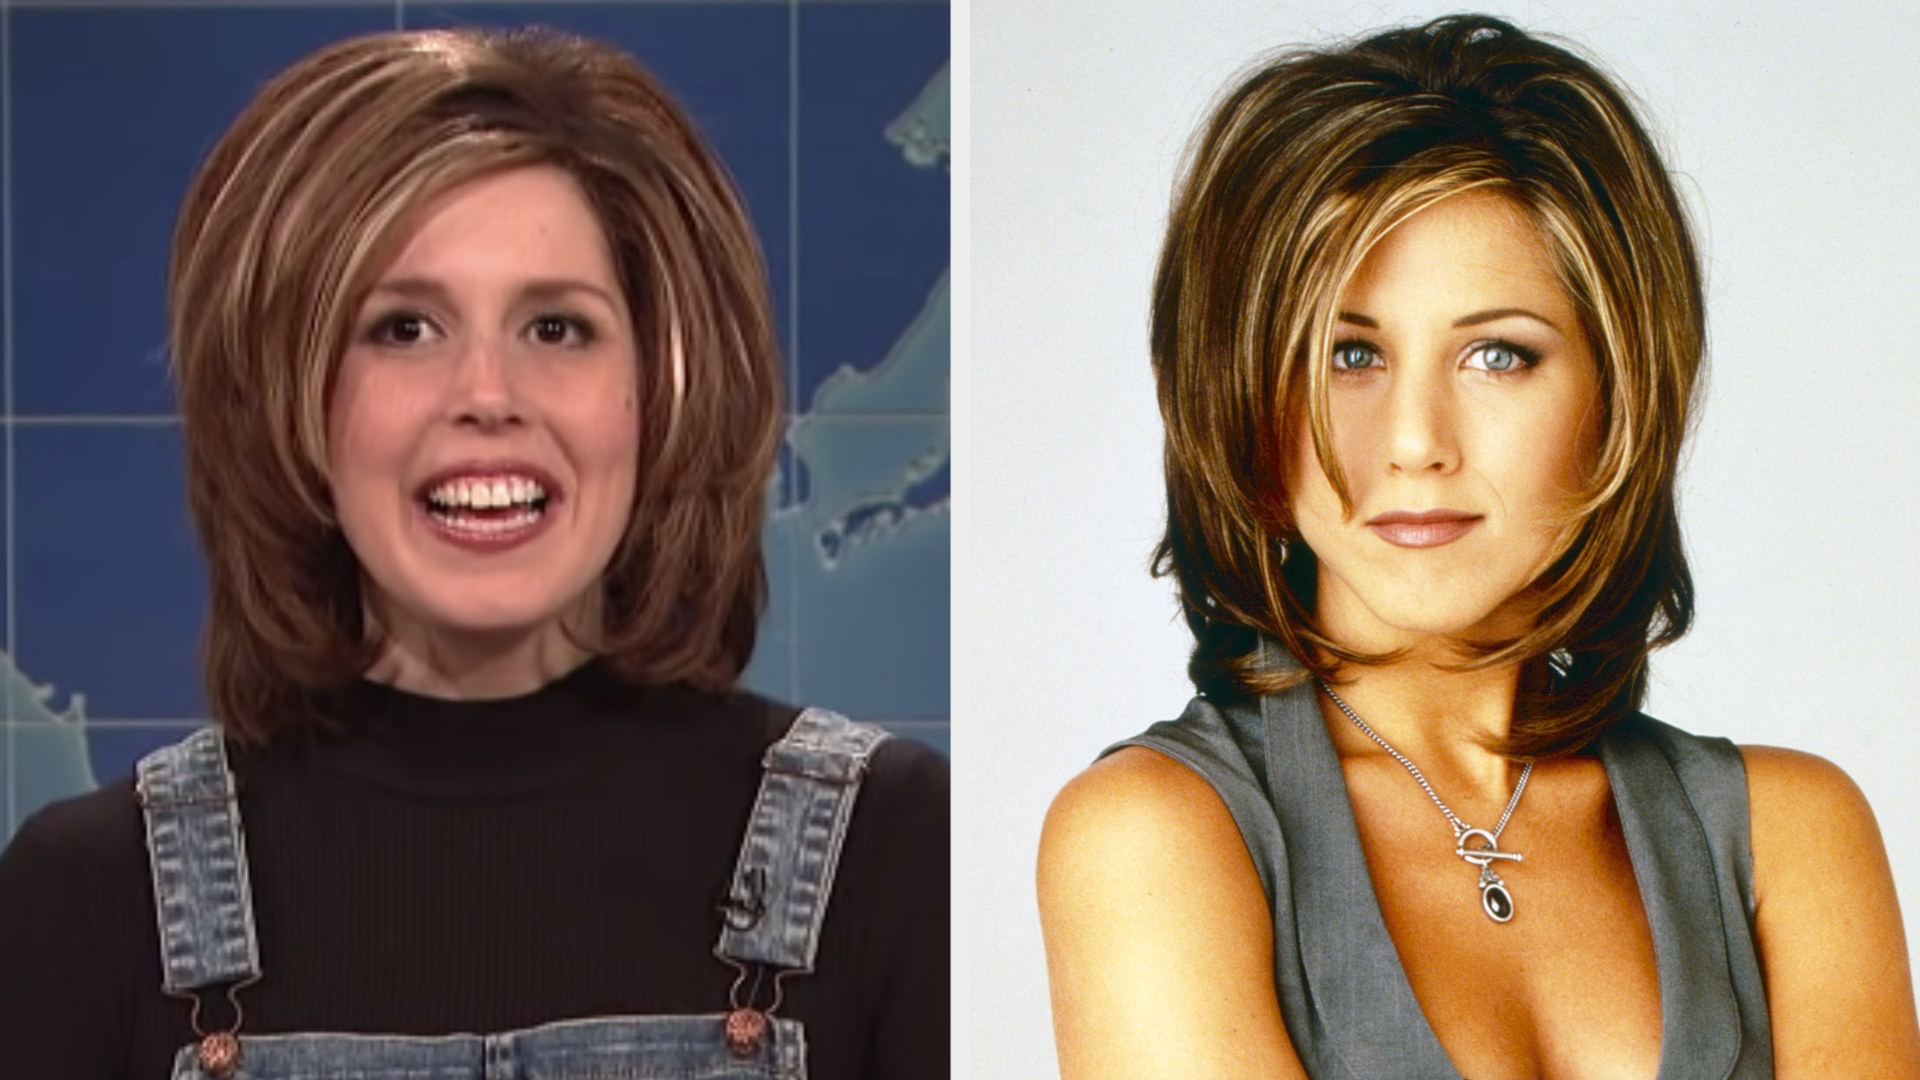 """Vanessa Bayer dressed with the signature """"Rachel"""" haircut from """"Friends"""" side by side with Jennifer Aniston with the same hair"""